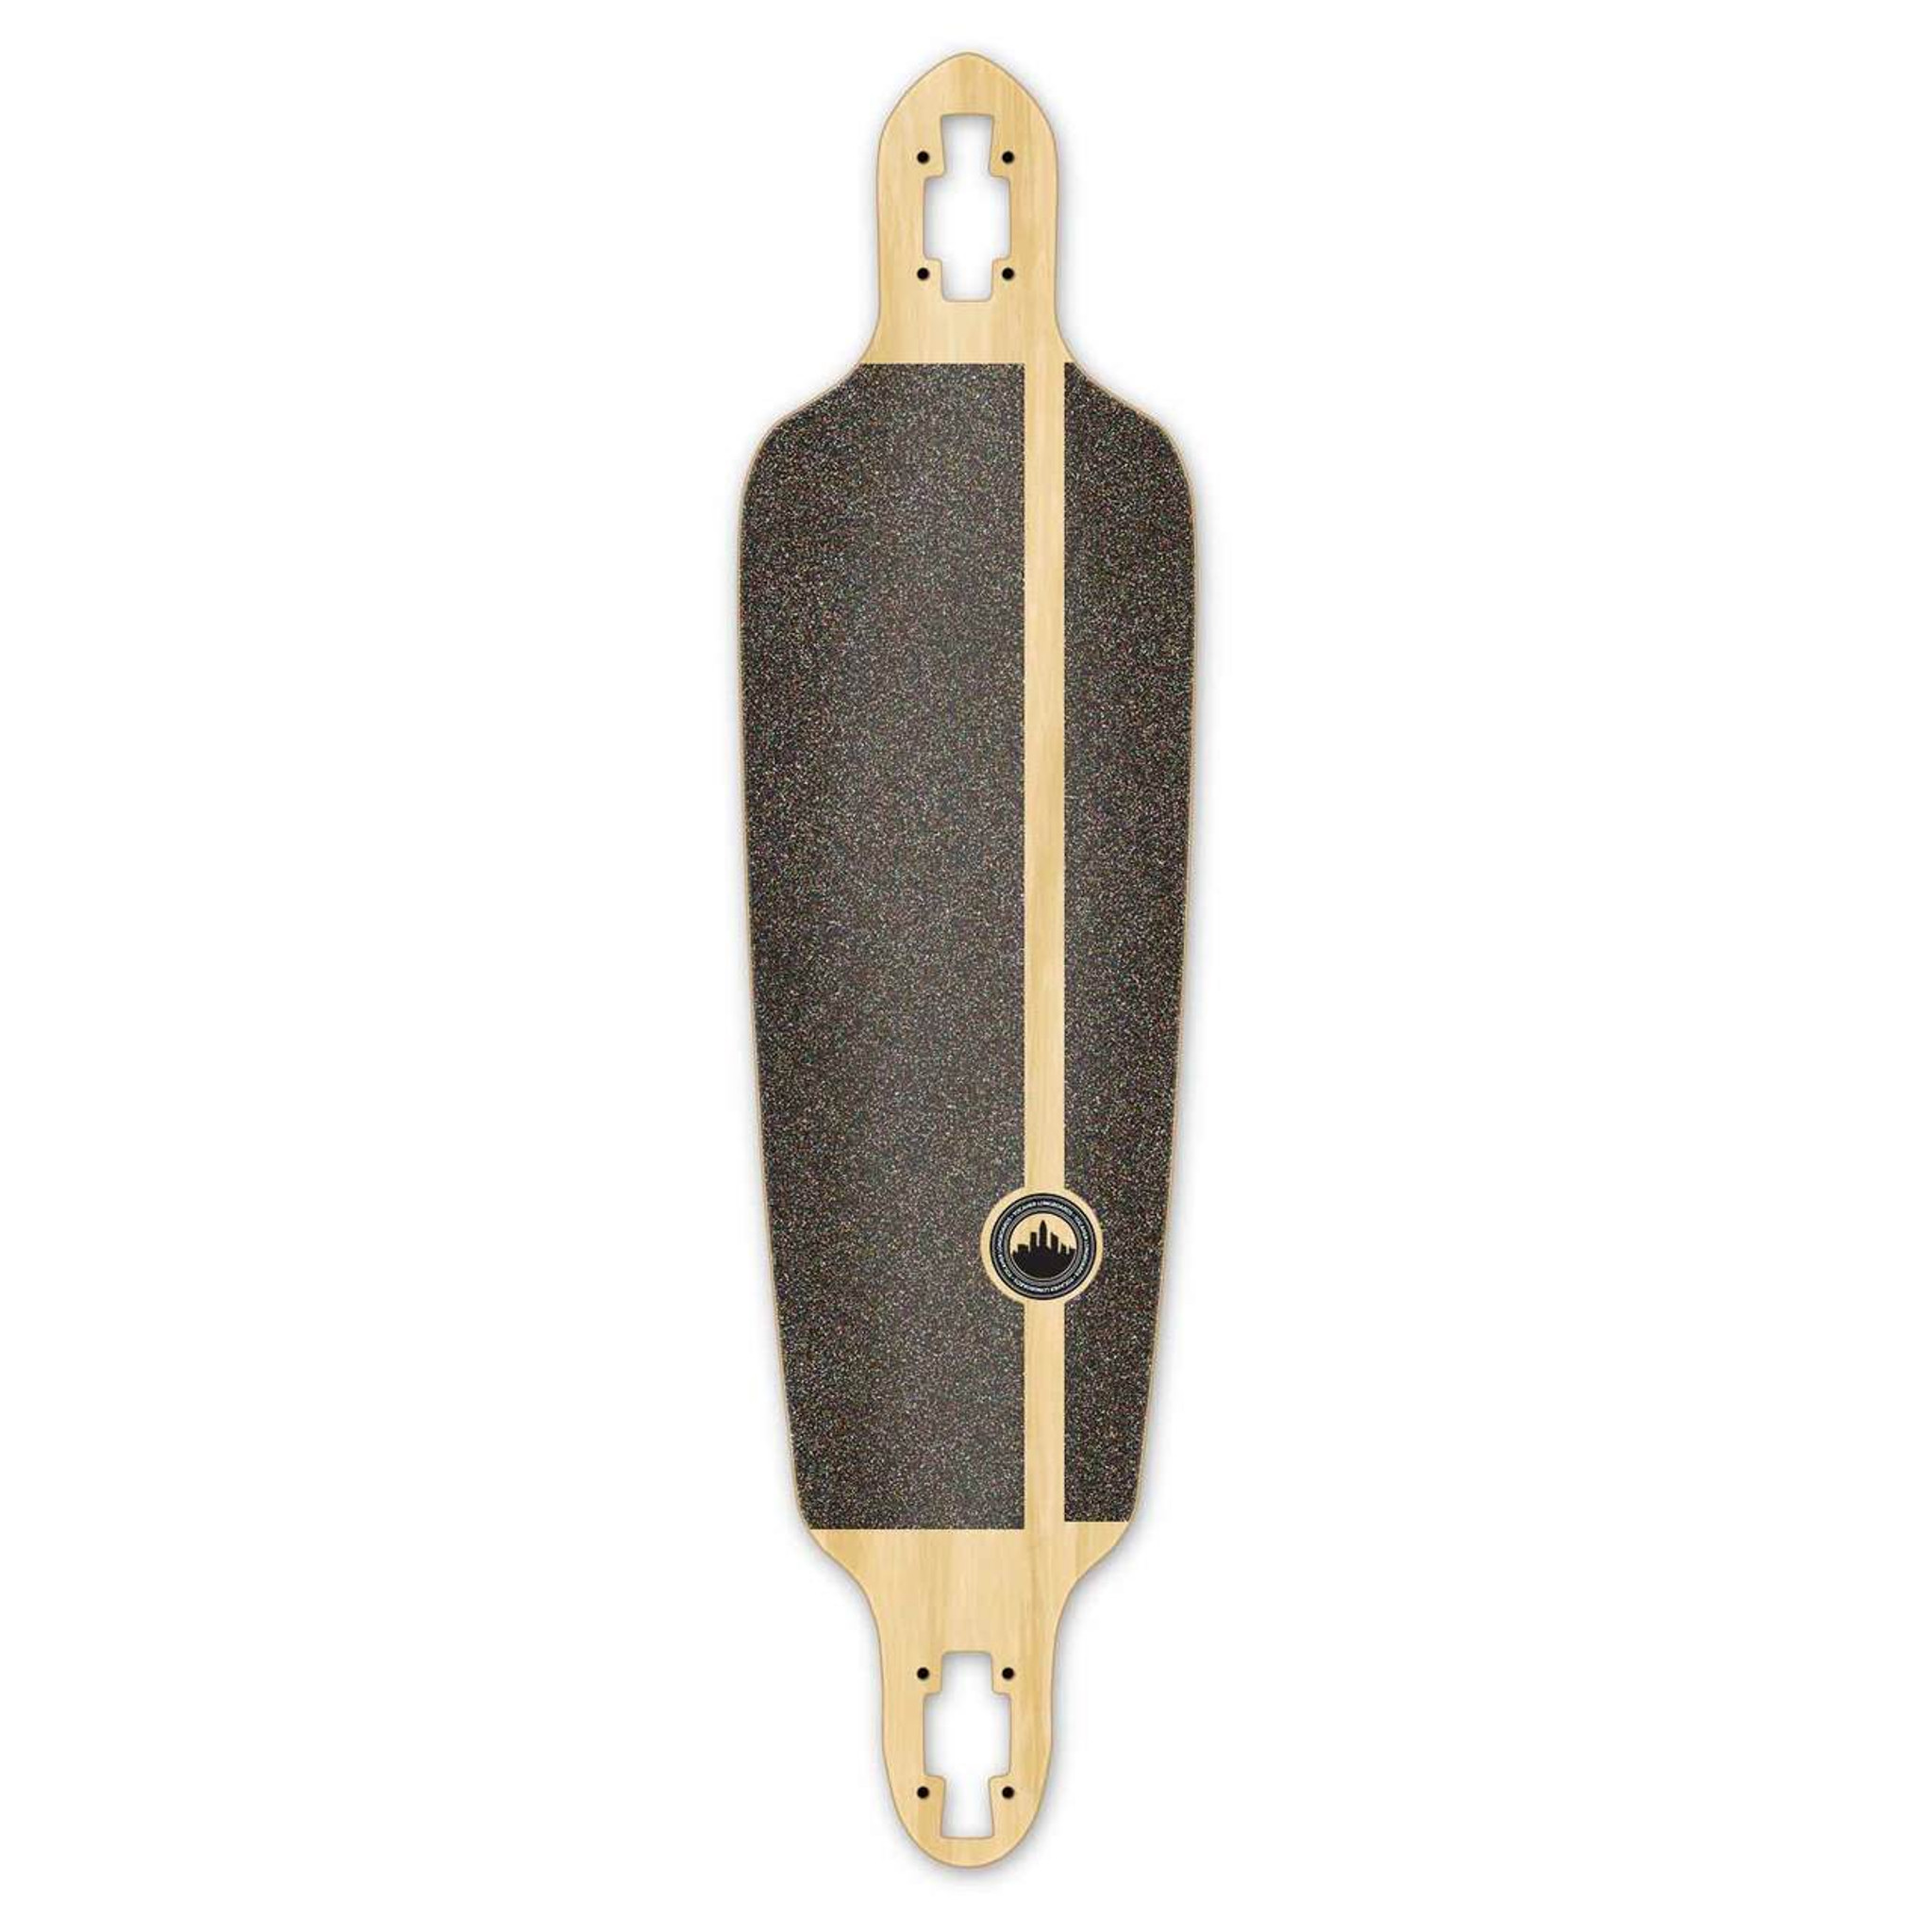 Yocaher Drop Through Blank Longboard Deck Stained Black